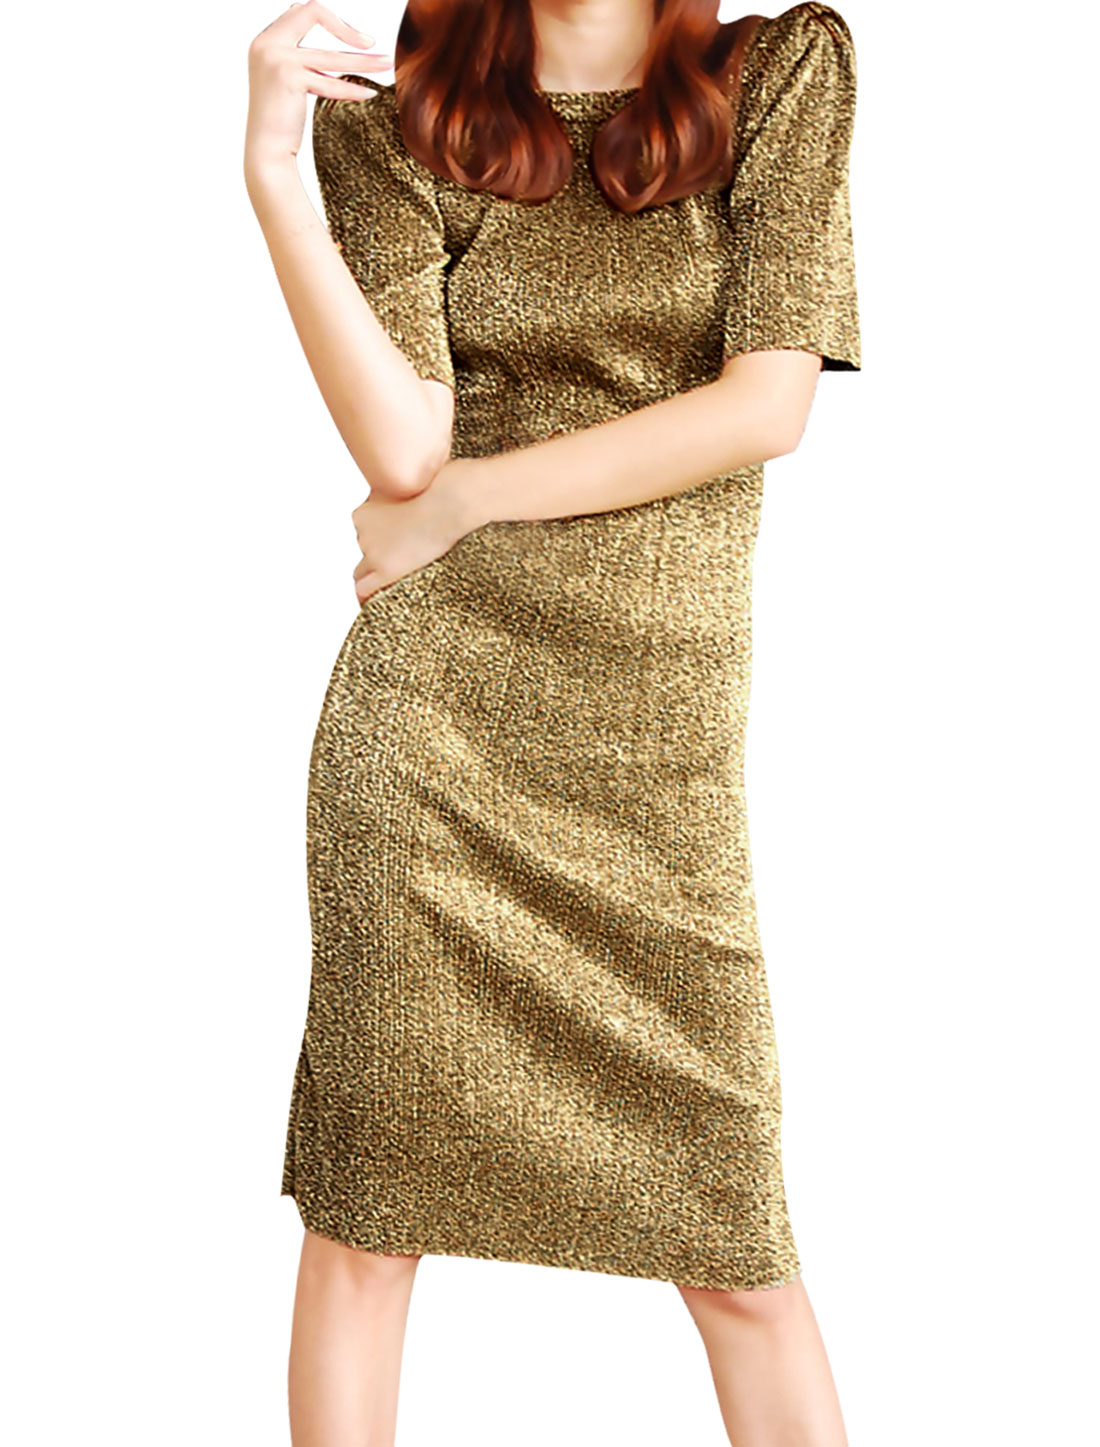 Ladies Round Neck Elbow Sleeve Padded Shoulder Gold Tone Knee-Length Dress XS